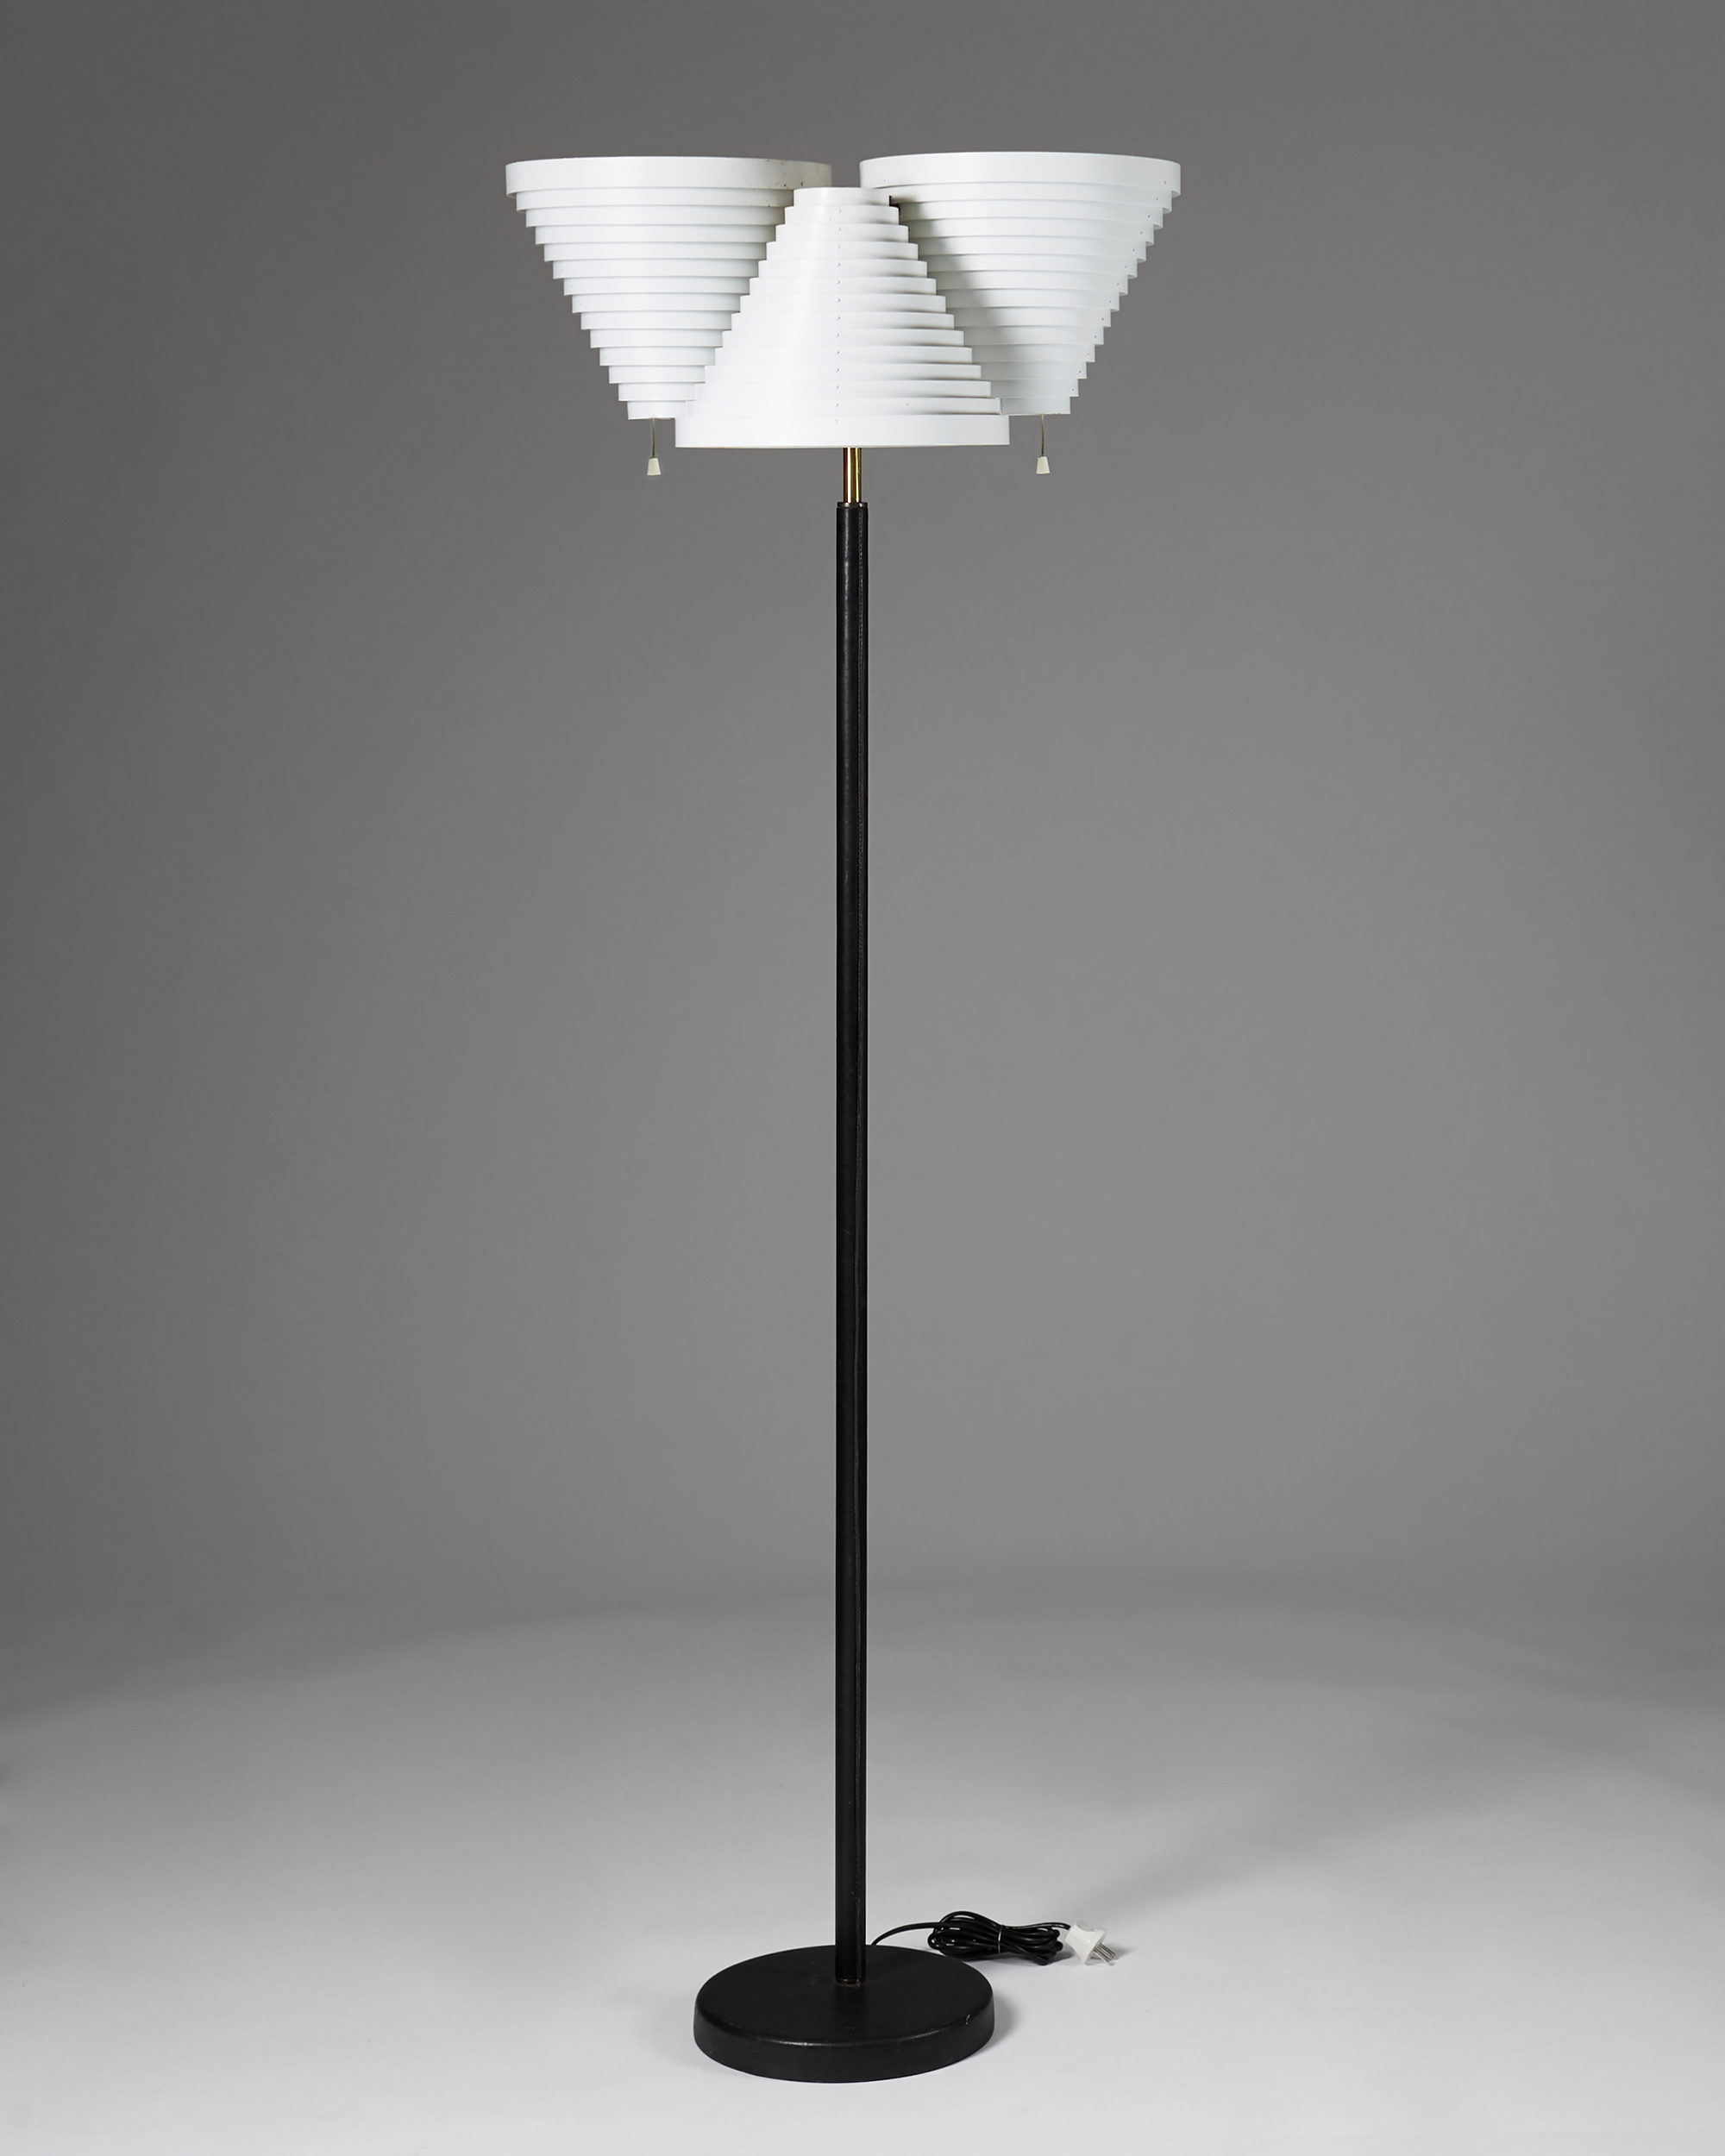 Floor Lamp model A809 designed by Alvar Aalto for Valaistustyö, Finland. 1959. by Modernity on curated-crowd.com